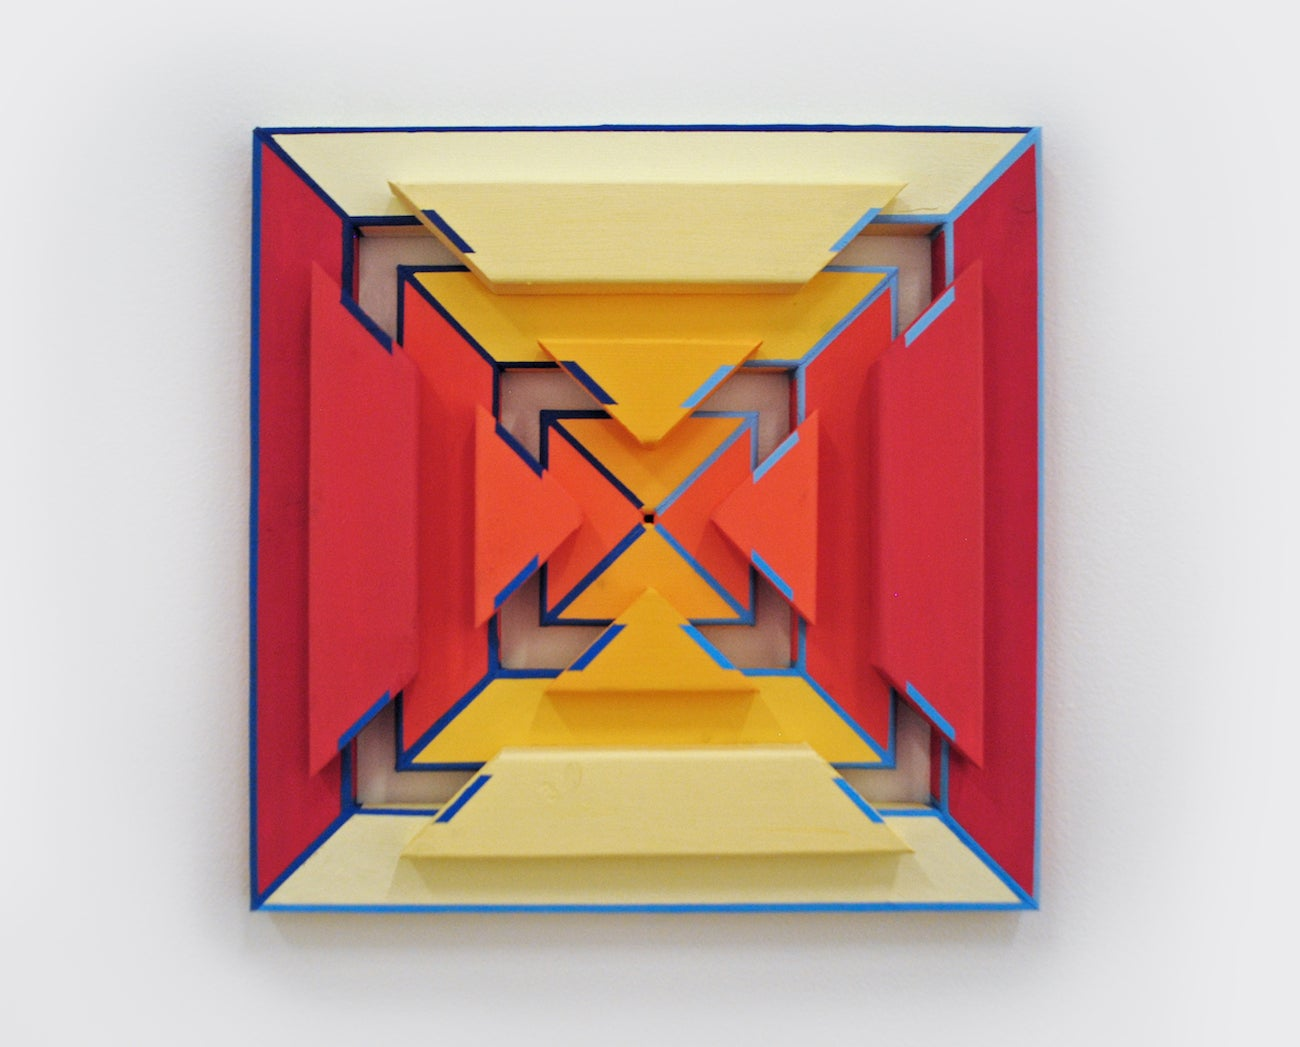 Staats - Acrylic on Wood Hanging Sculpture, Geometric Abstract